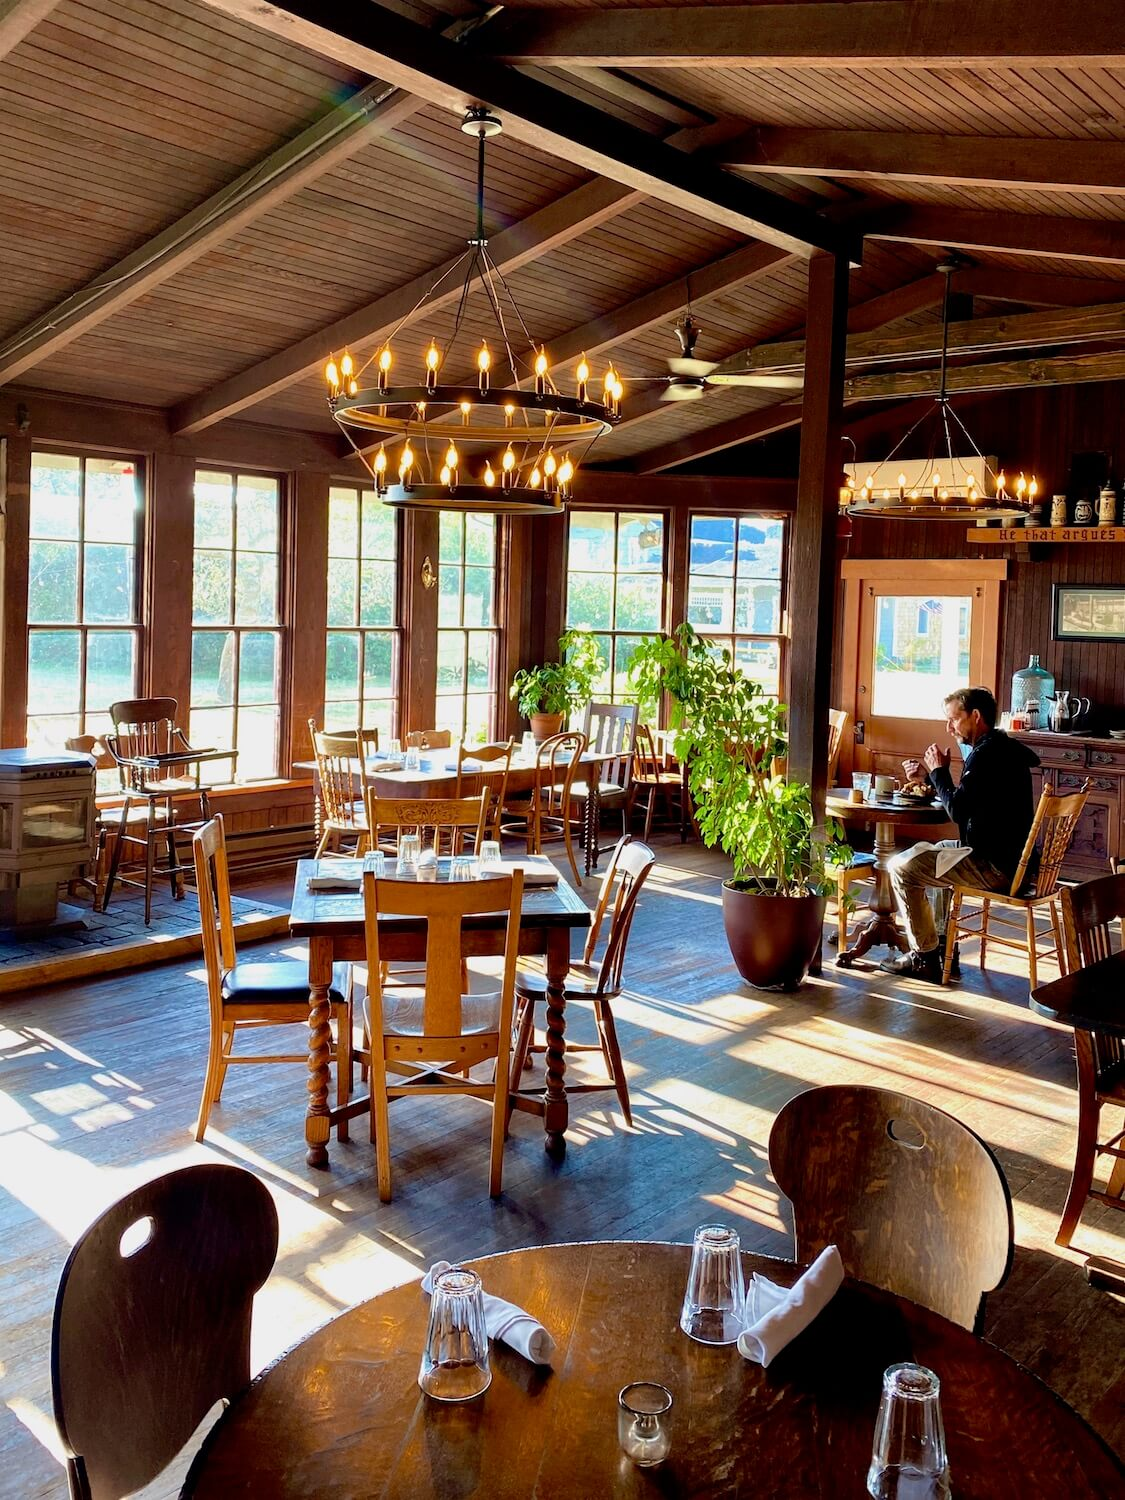 The rustic wood paneled vaulted ceiling of the restaurant at the Tokeland Hotel allows light to flow in through the eight panel pioneer style windows. Another restaurant patron is sitting at a table in the background eating breakfast.